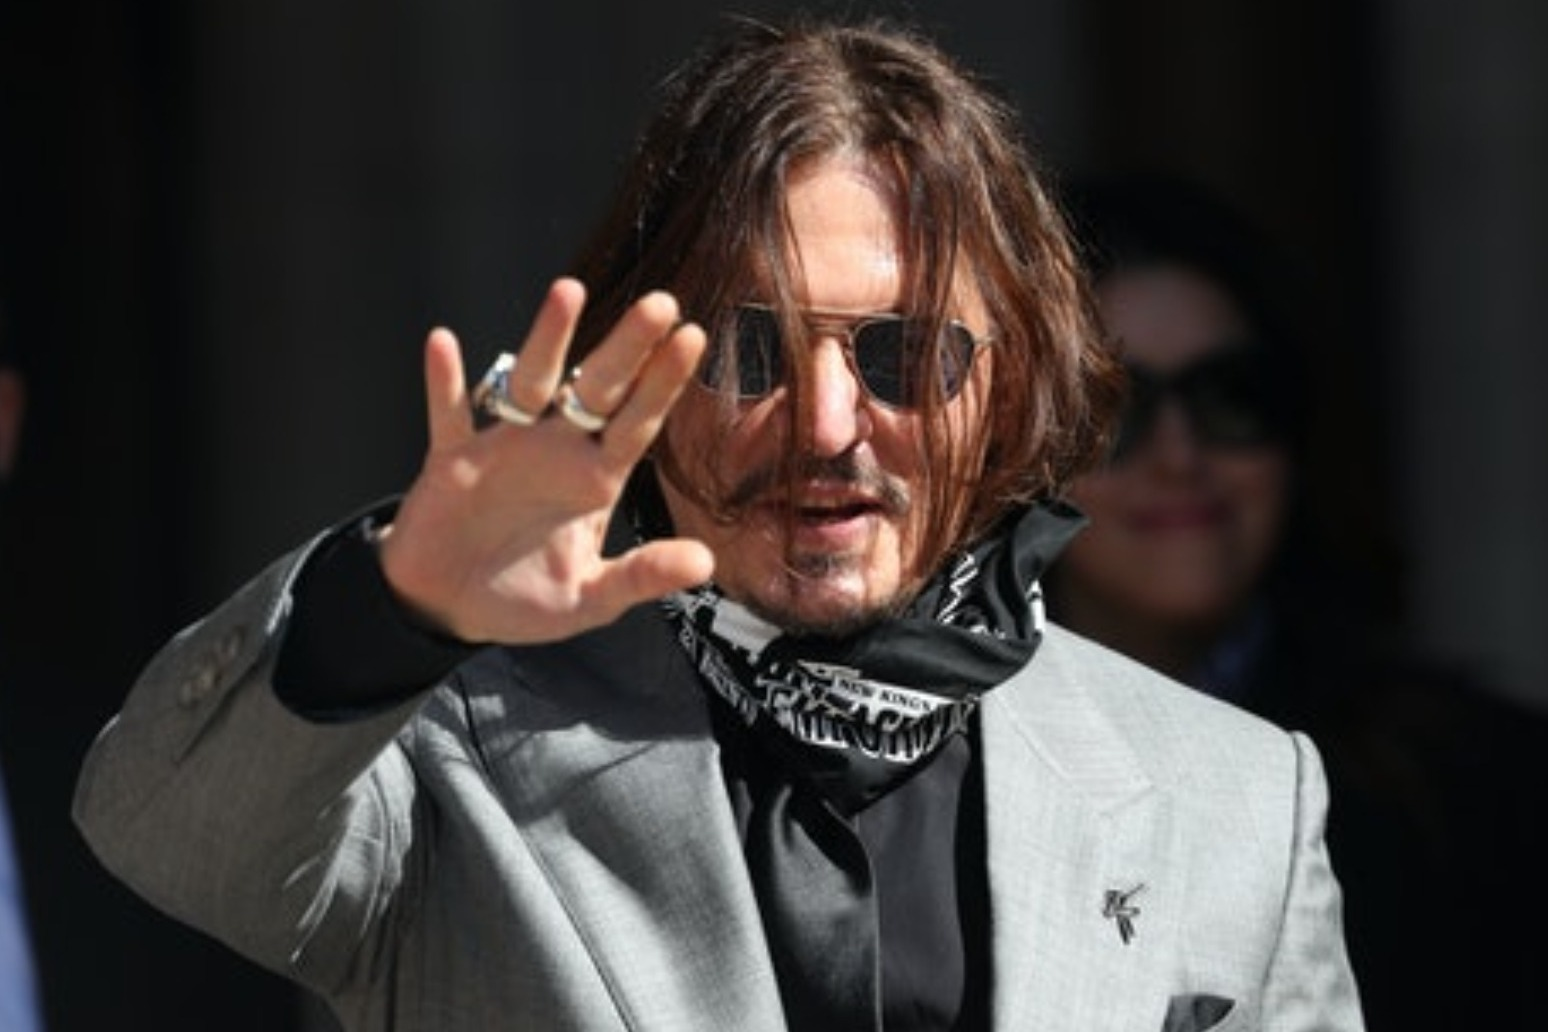 Johnny Depp loses libel case against The Sun over 'wife beater' article